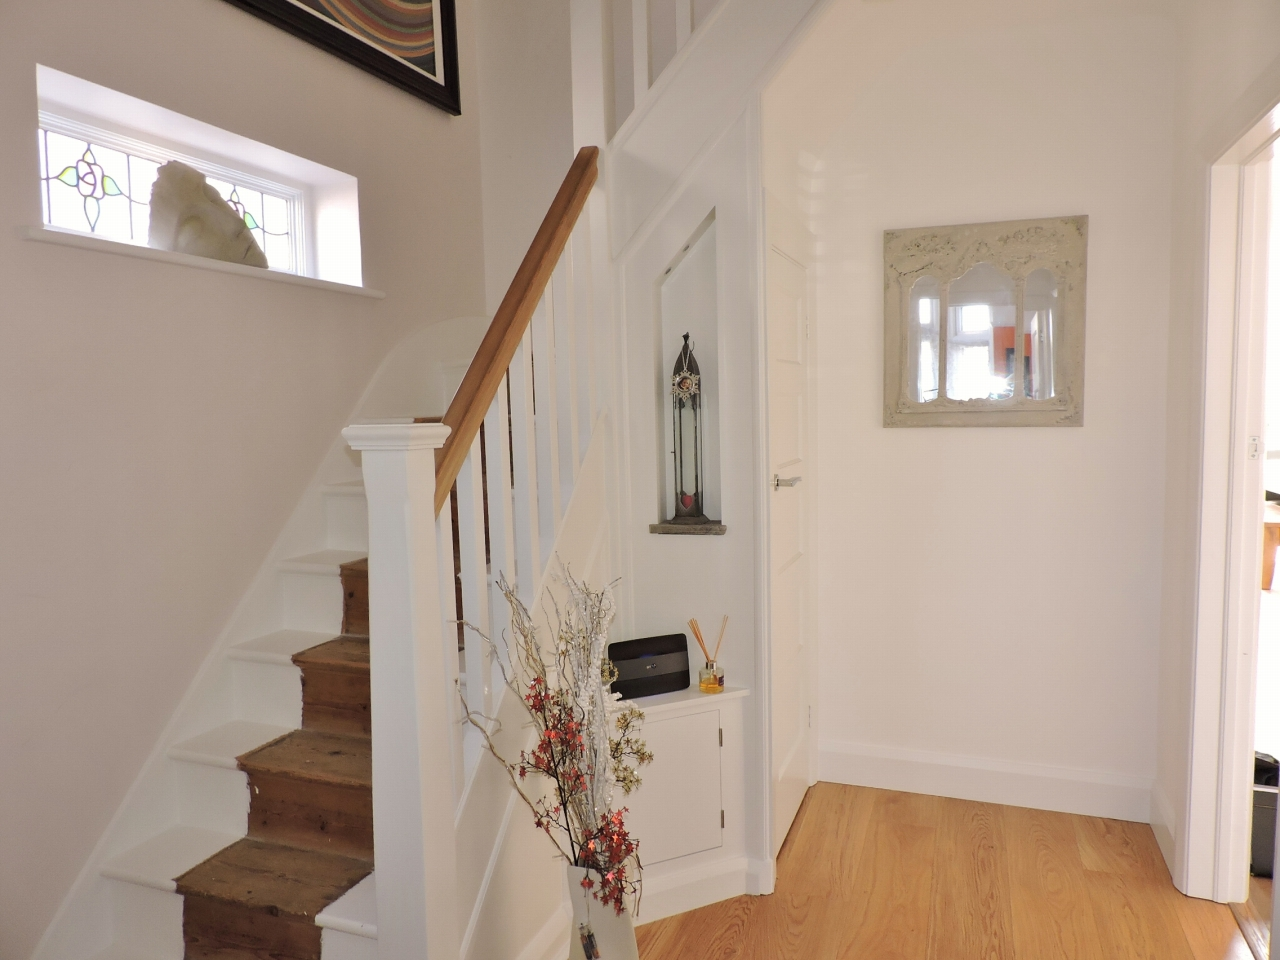 3 bedroom semi-detached house SSTC in New Malden - Photograph 2